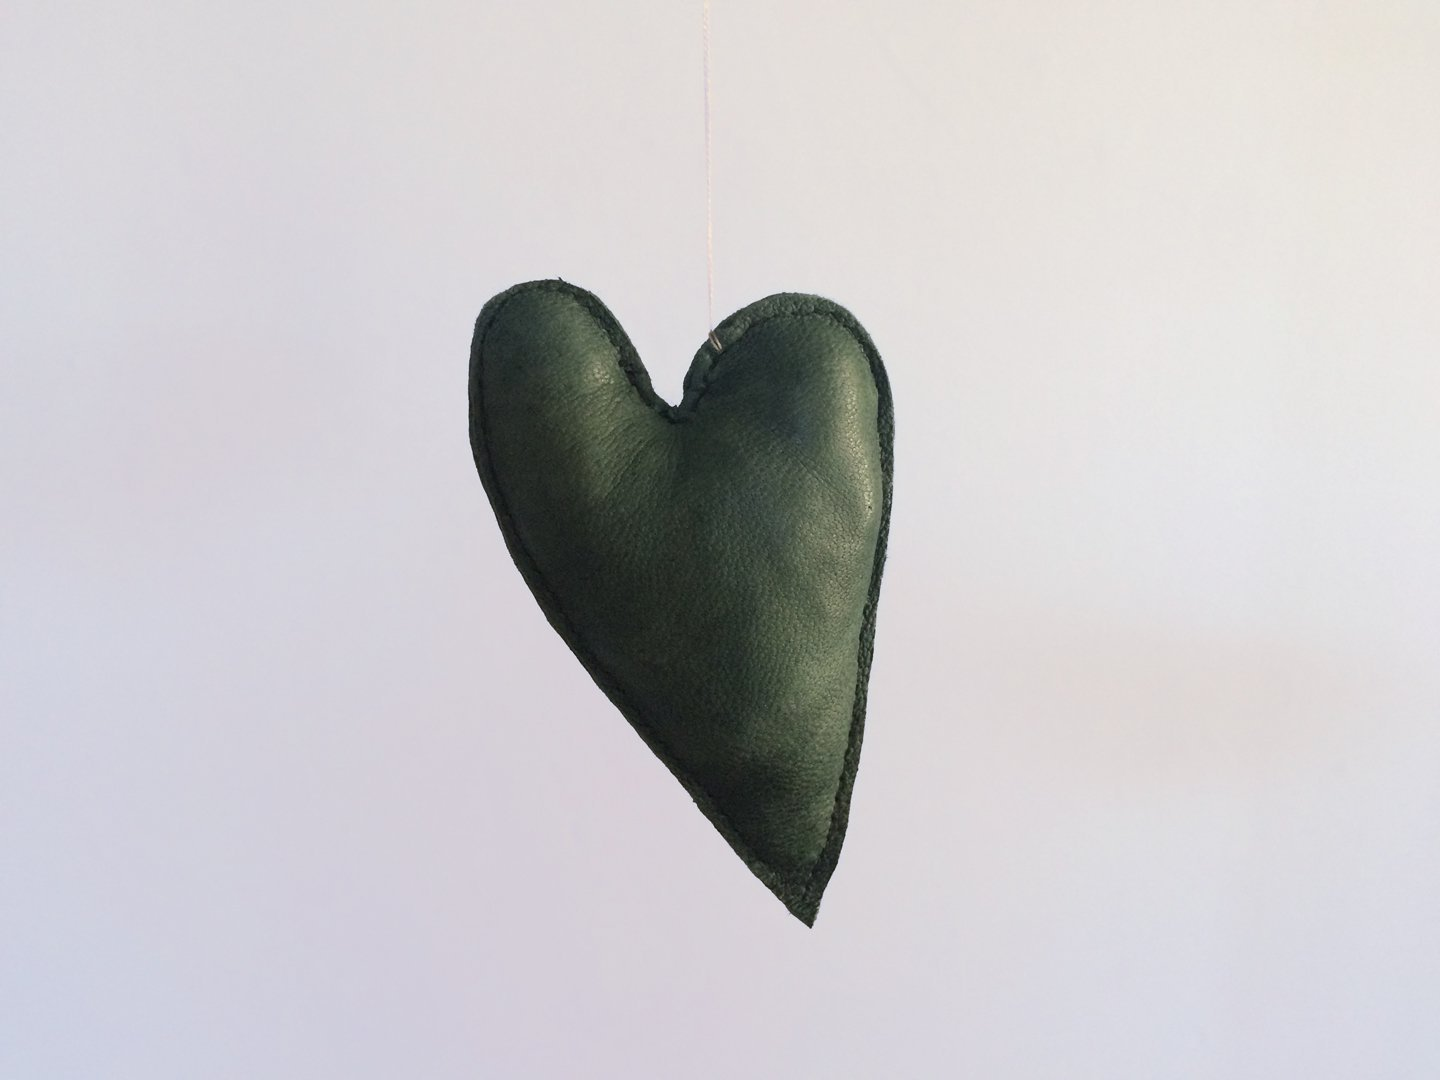 HEART in green, medium